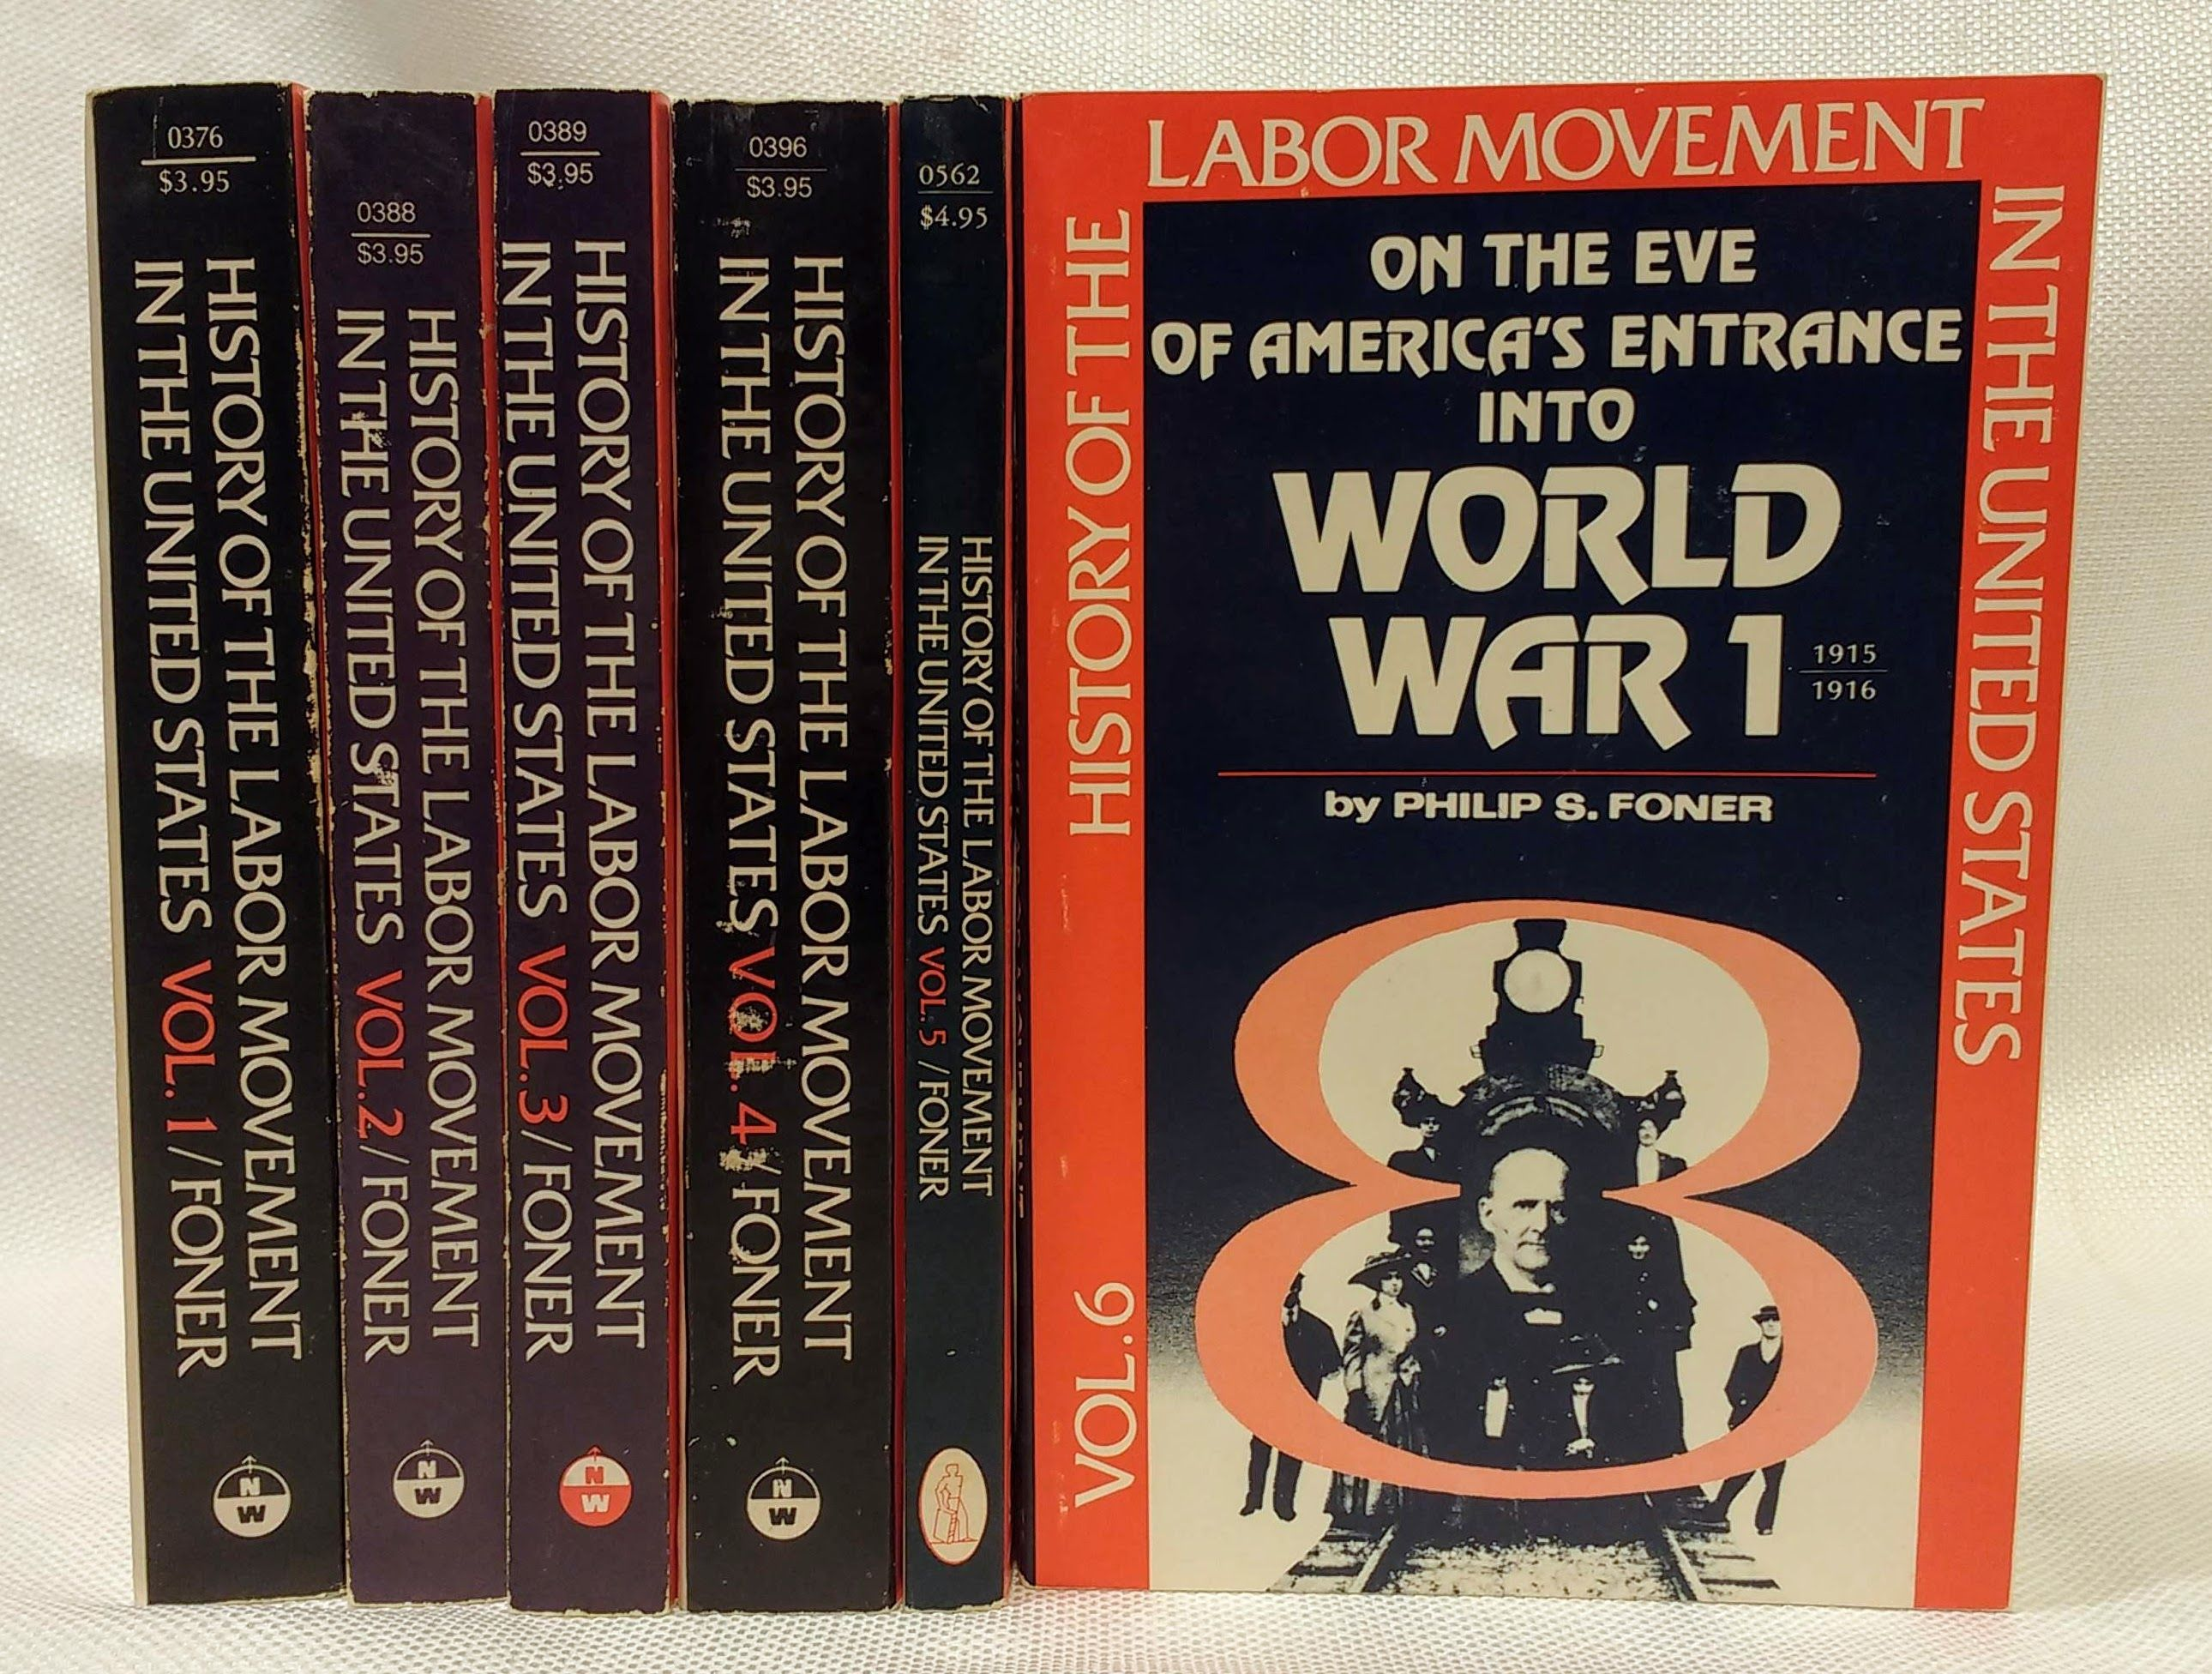 History of the Labor Movement in the United States (Vols. 1 - 6), Foner, Philip S.